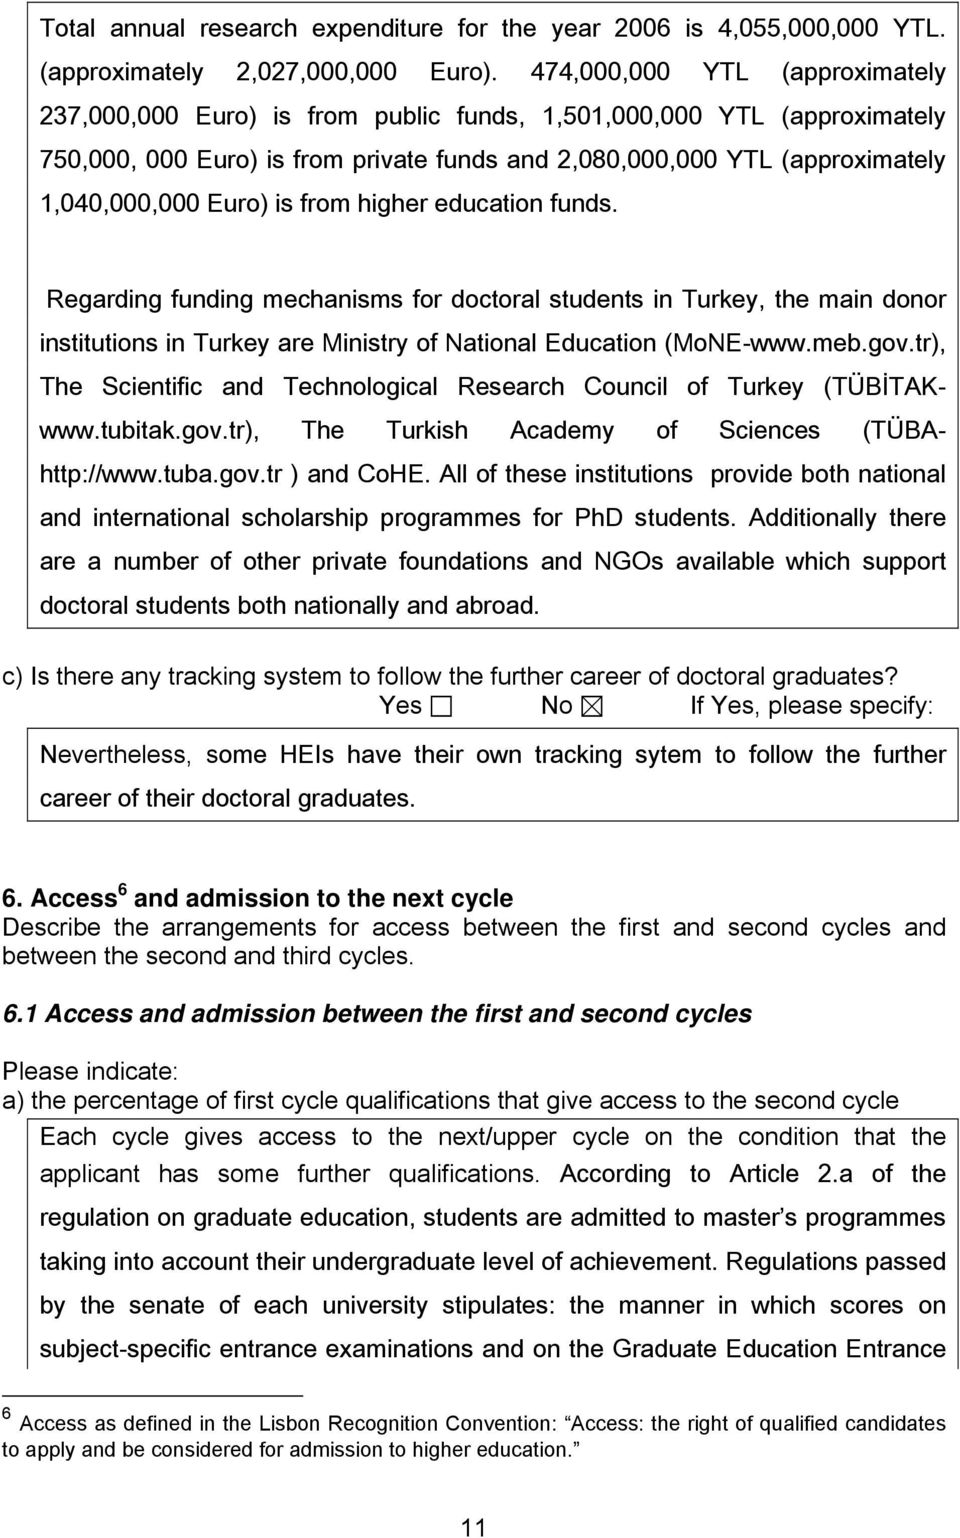 Euro) is from higher education funds. Regarding funding mechanisms for doctoral students in Turkey, the main donor institutions in Turkey are Ministry of National Education (MoNE-www.meb.gov.